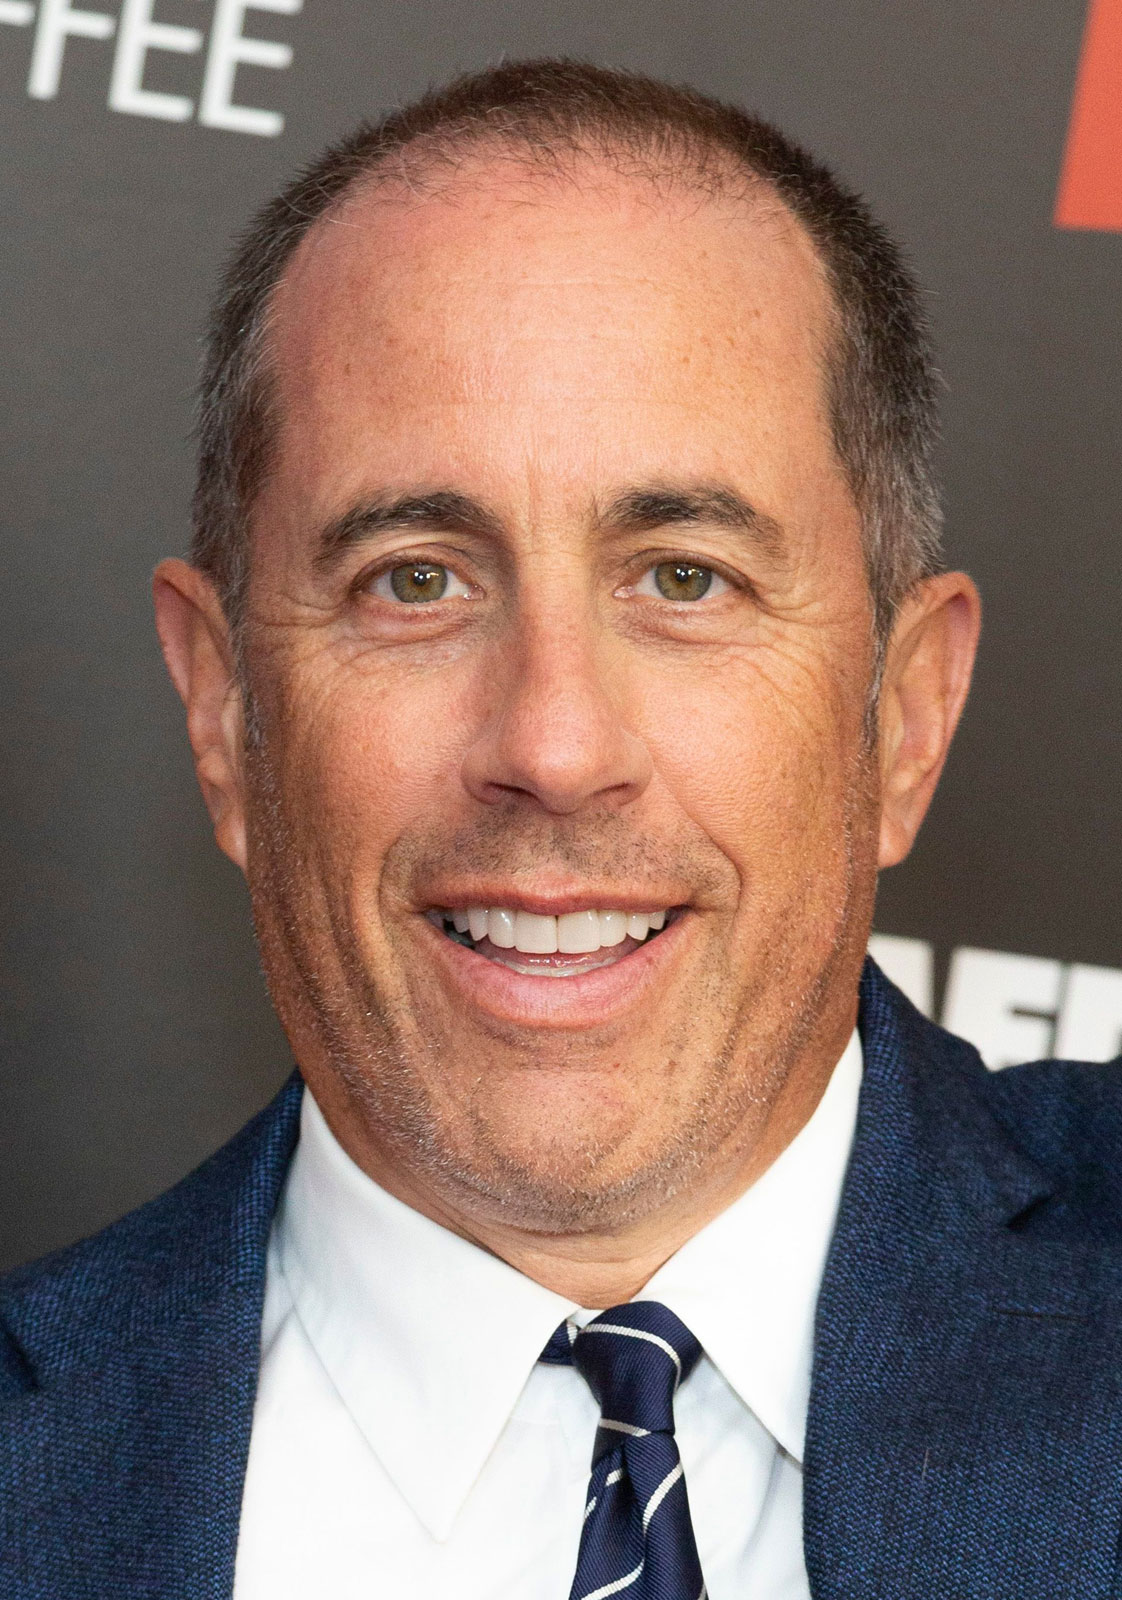 Read about Jerome Seinfeld's personal life, Net worth and more